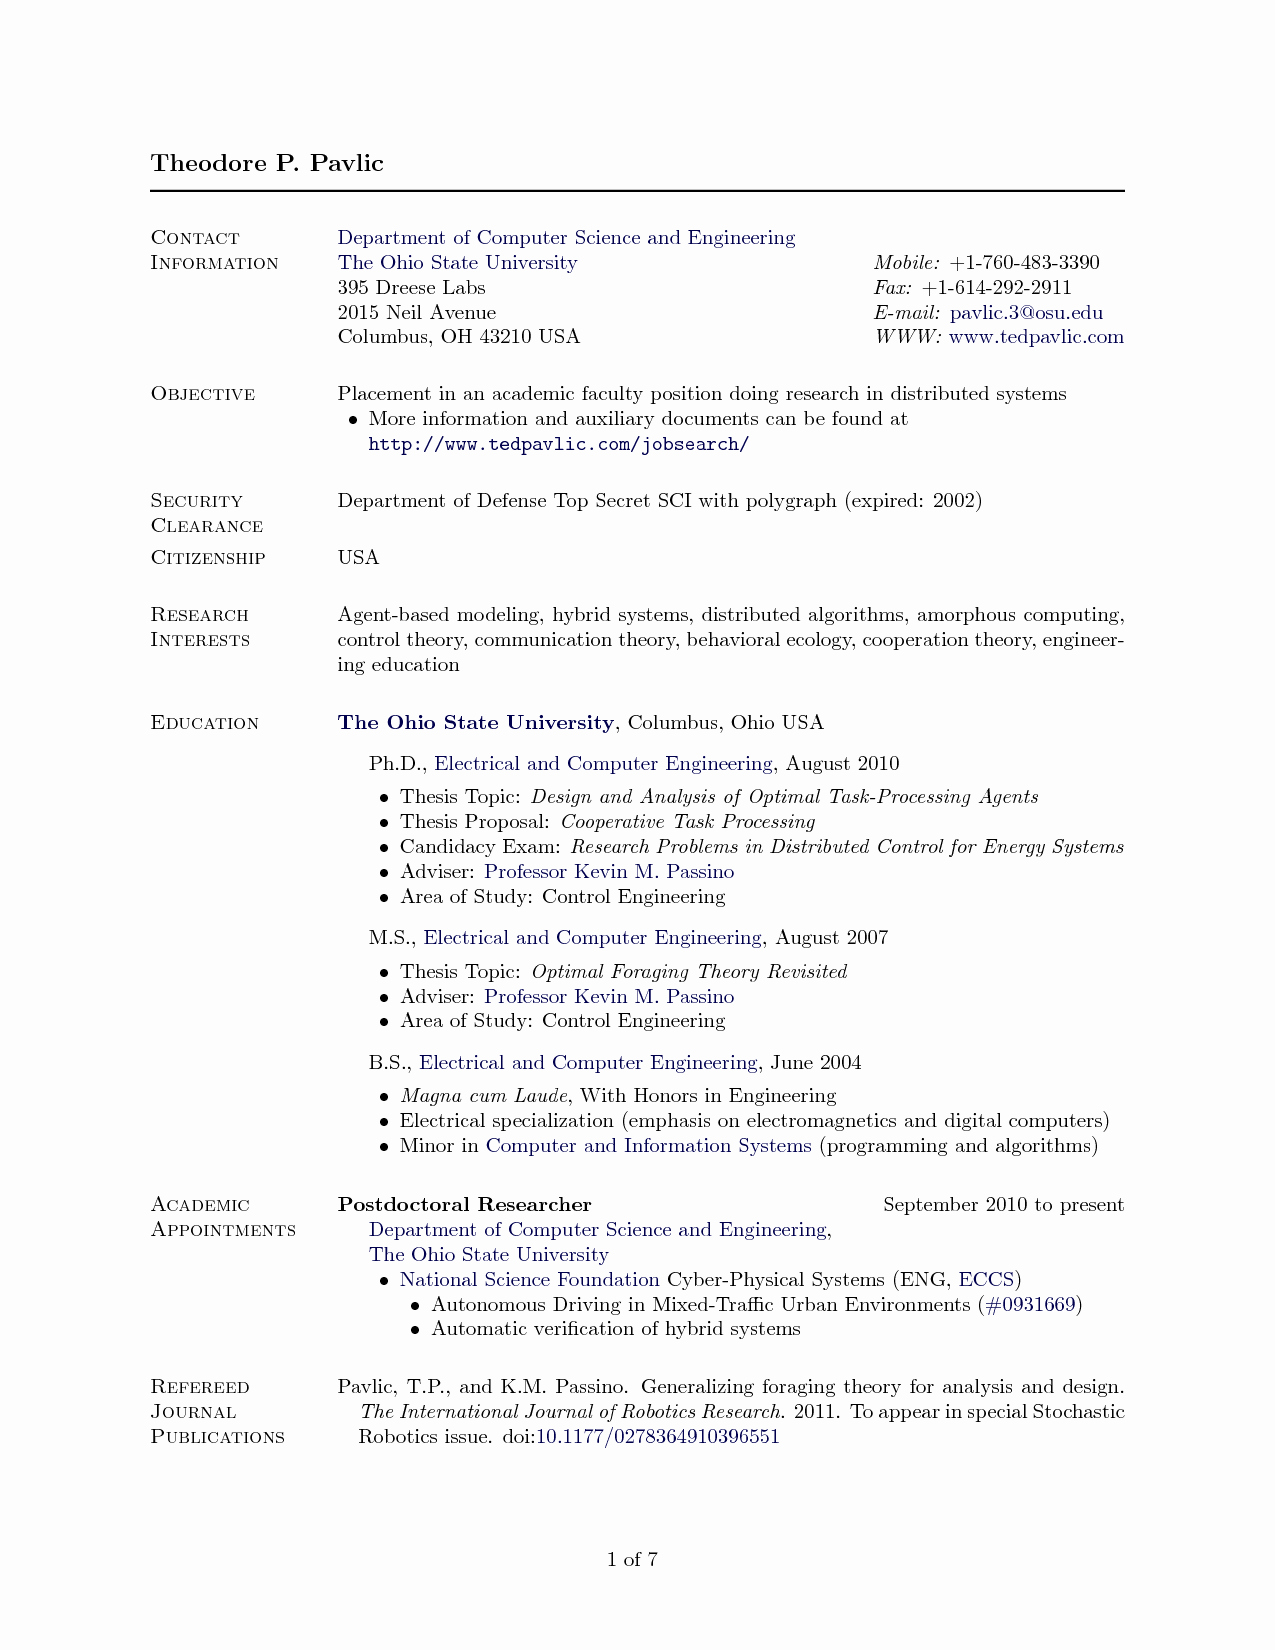 Cover Letter Latex Template New Latex Resume Template Puter Science